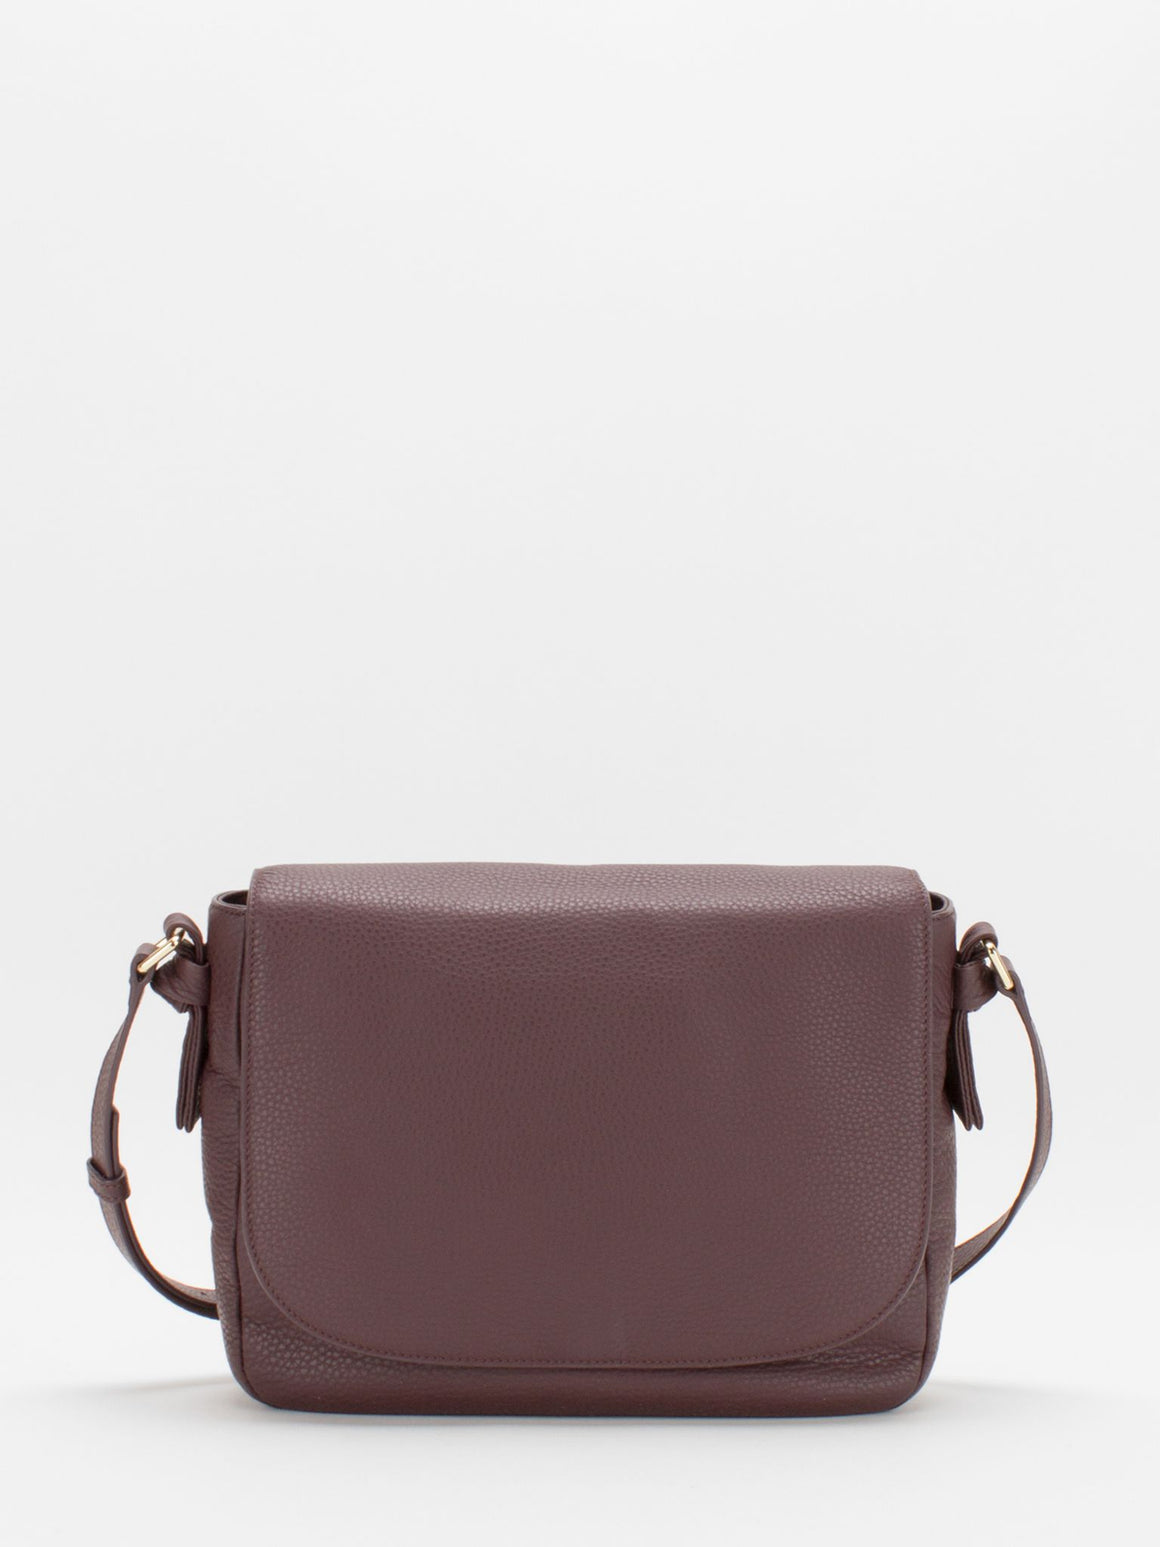 Belle Leather Saddle Bag - Very Berry